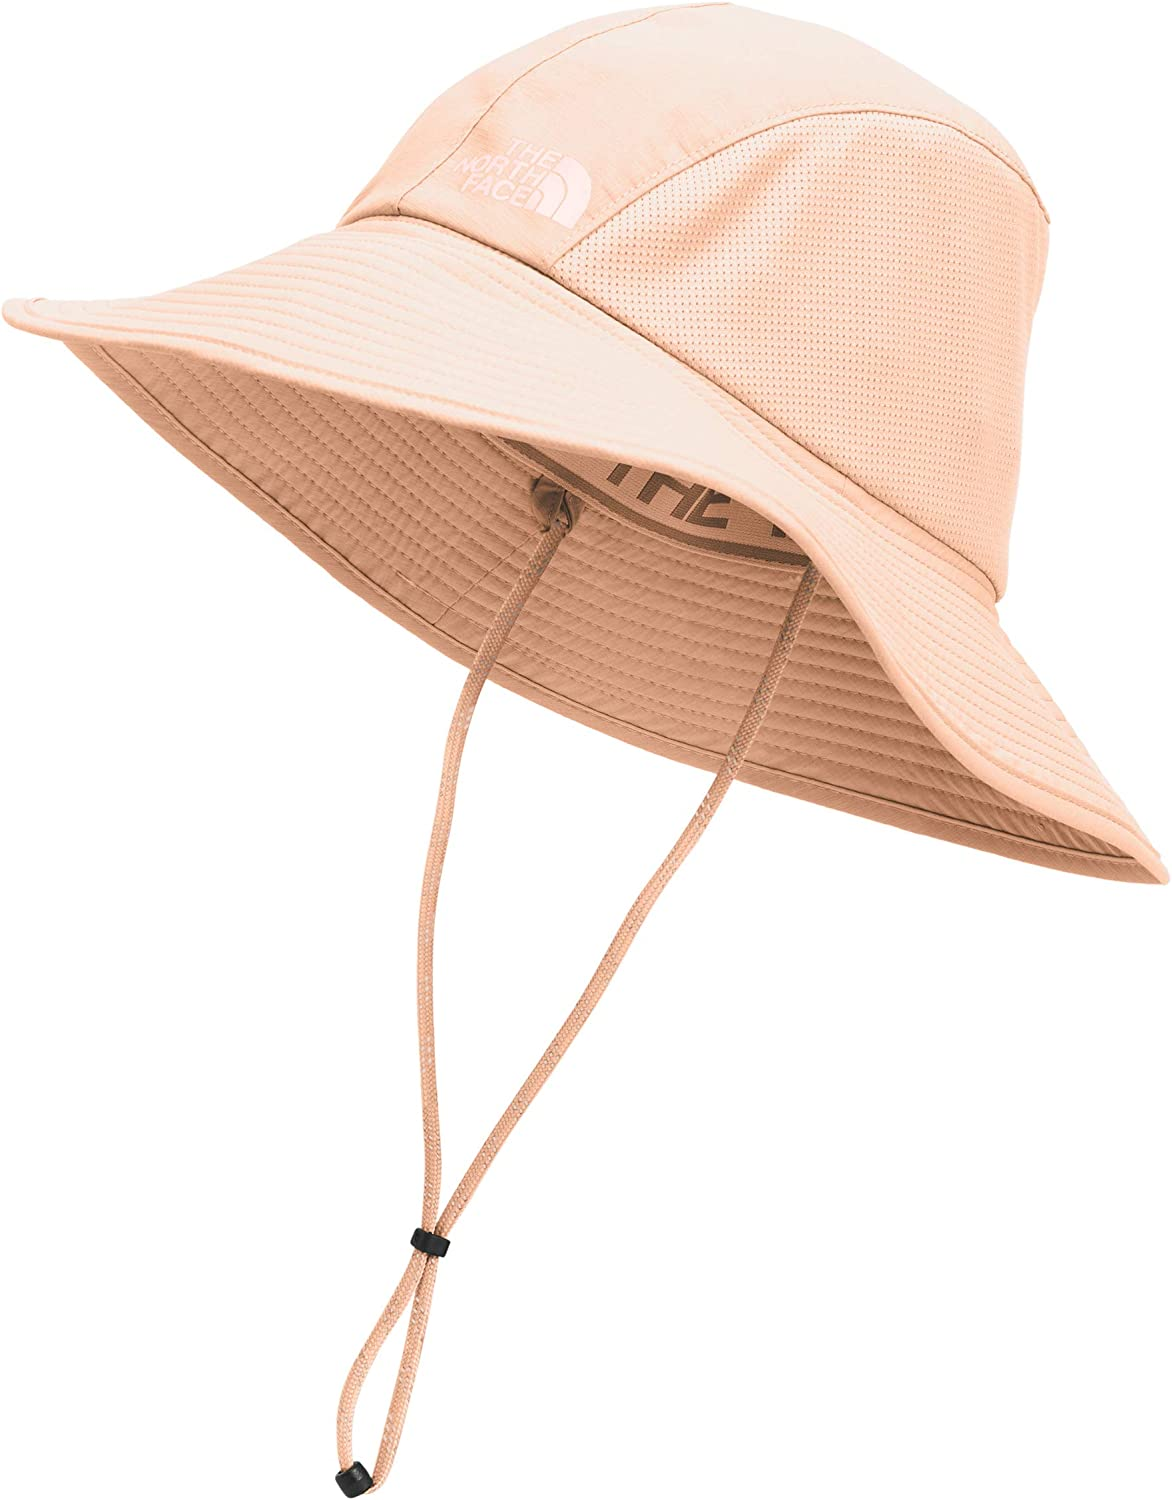 Max 89% OFF High quality The North Face Women's Breeze Hat Brimmer Horizon